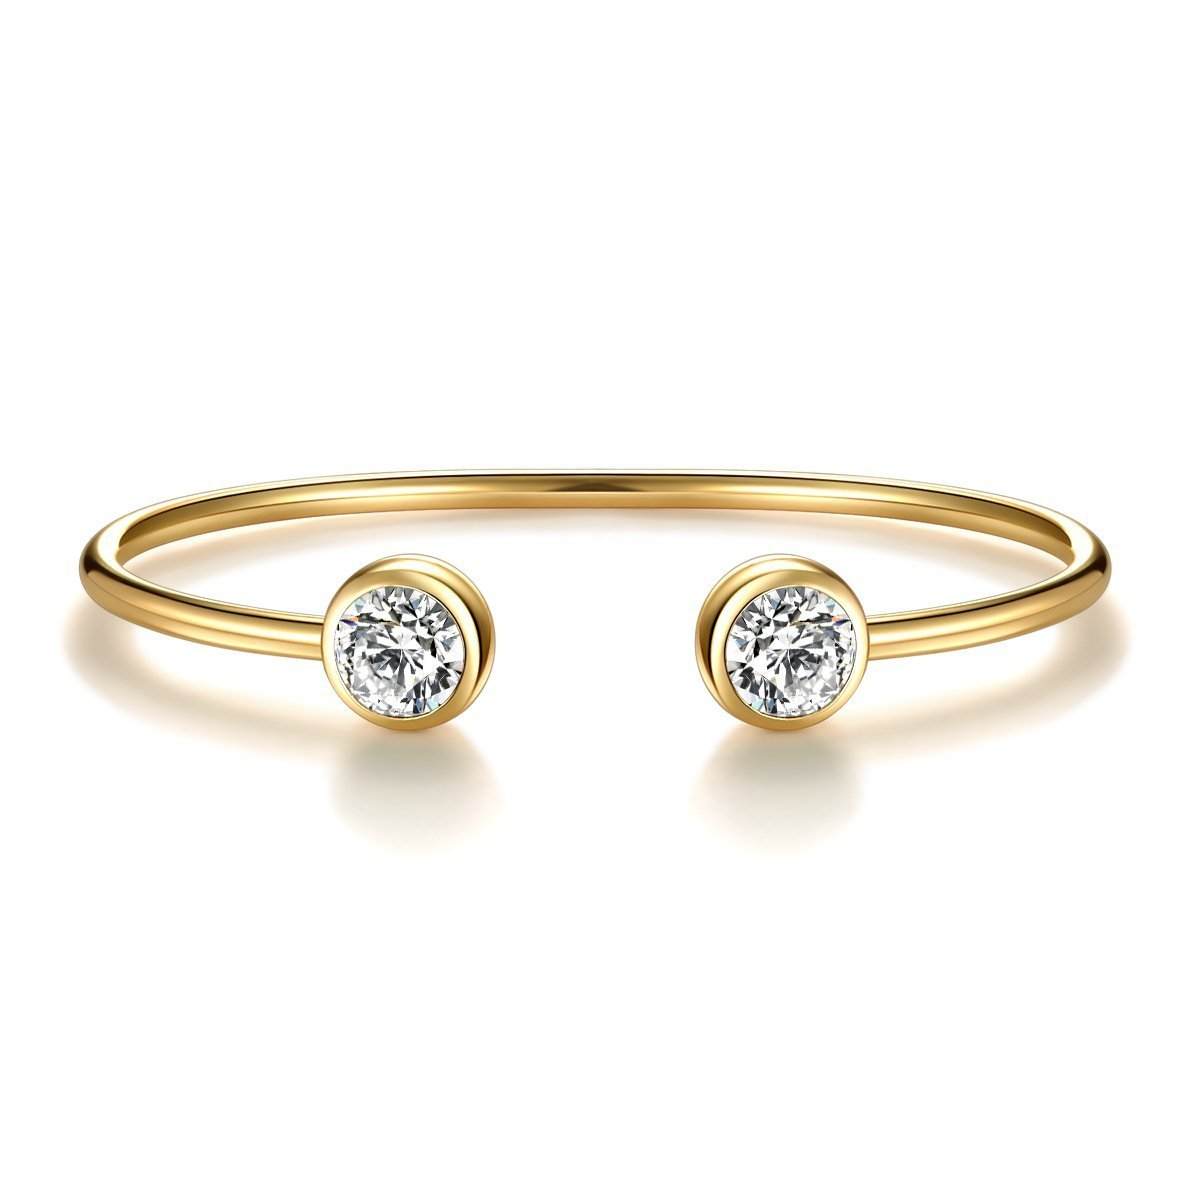 ISAACSONG.DESIGN Rose Gold Silver Tone Cuff Bangle Bracelet Zirconia Crystal Stone Jewelry for Women (Yellow Gold)